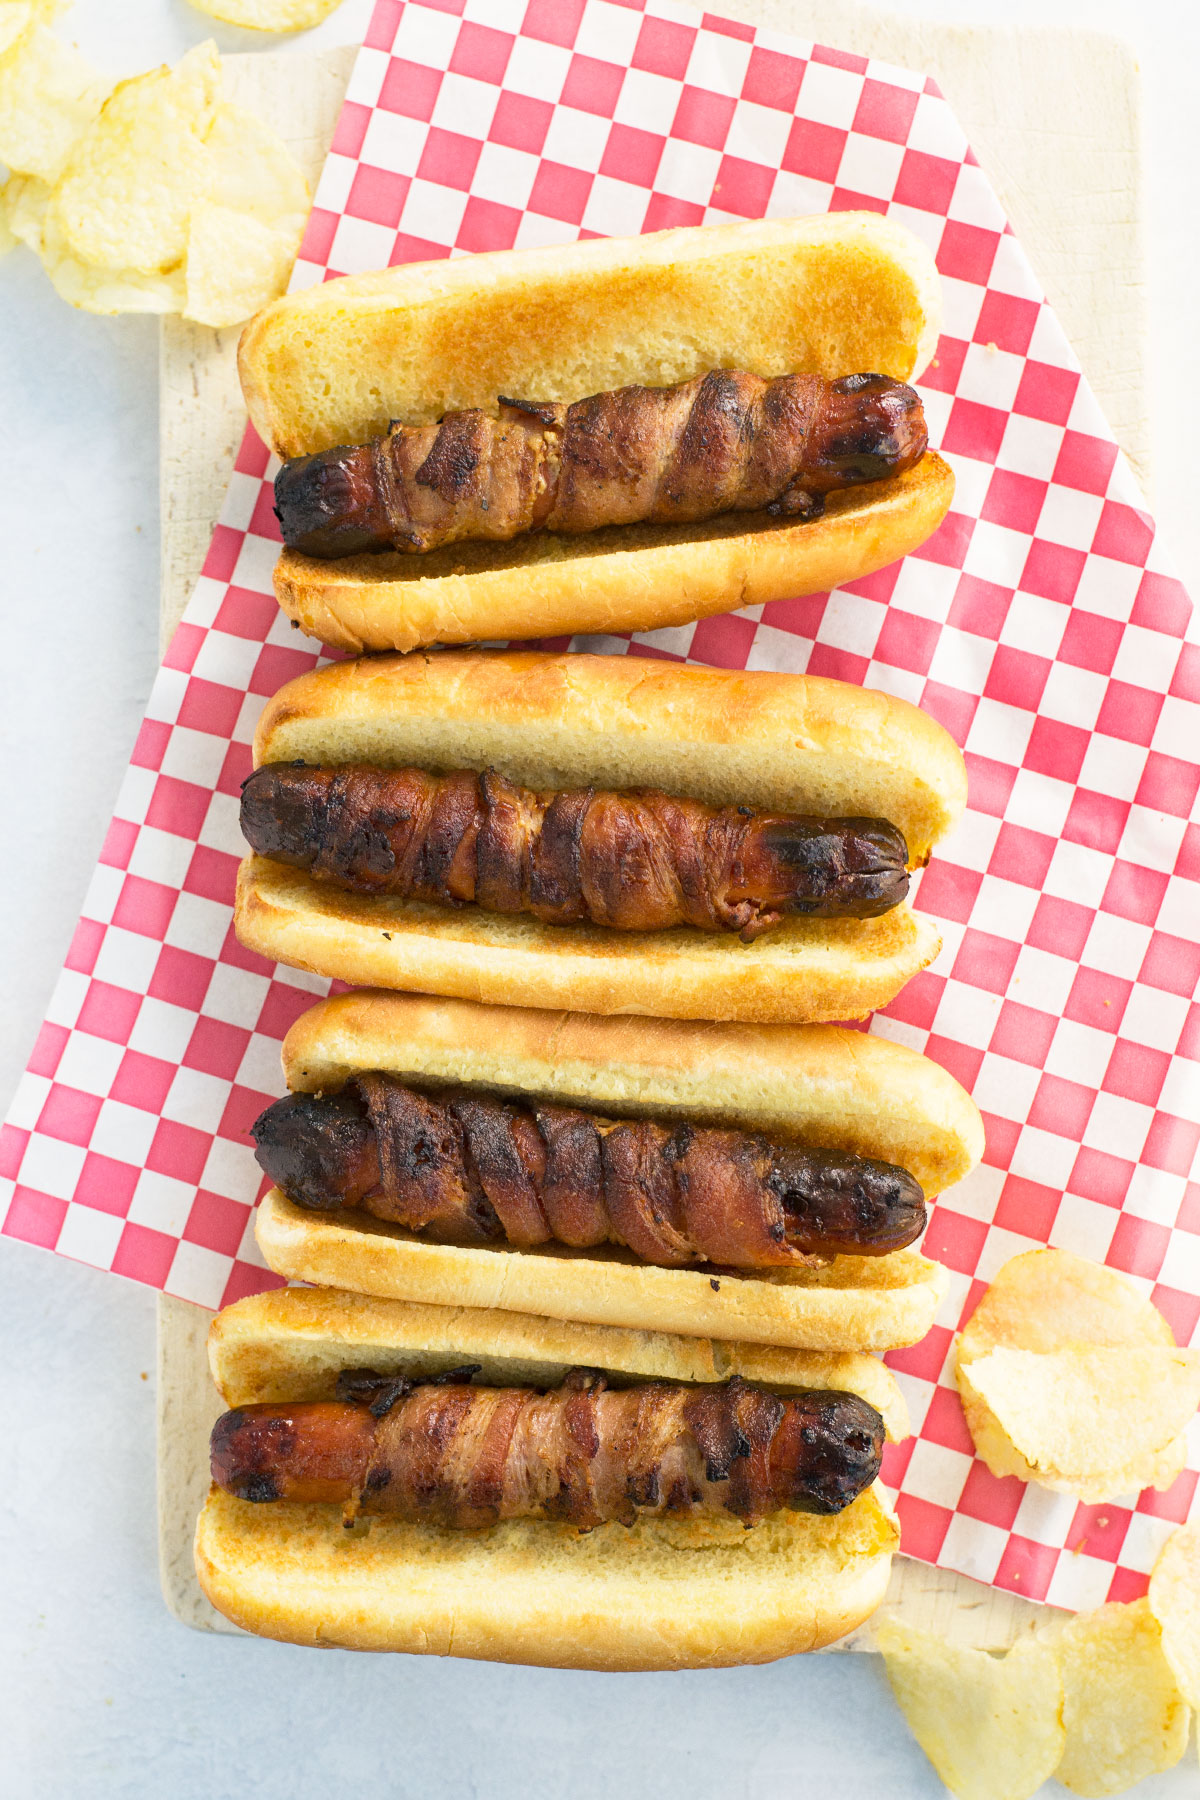 4 hot dogs in buns wrapped in bacon sit atop a red and white checked paper with potato chips around it.